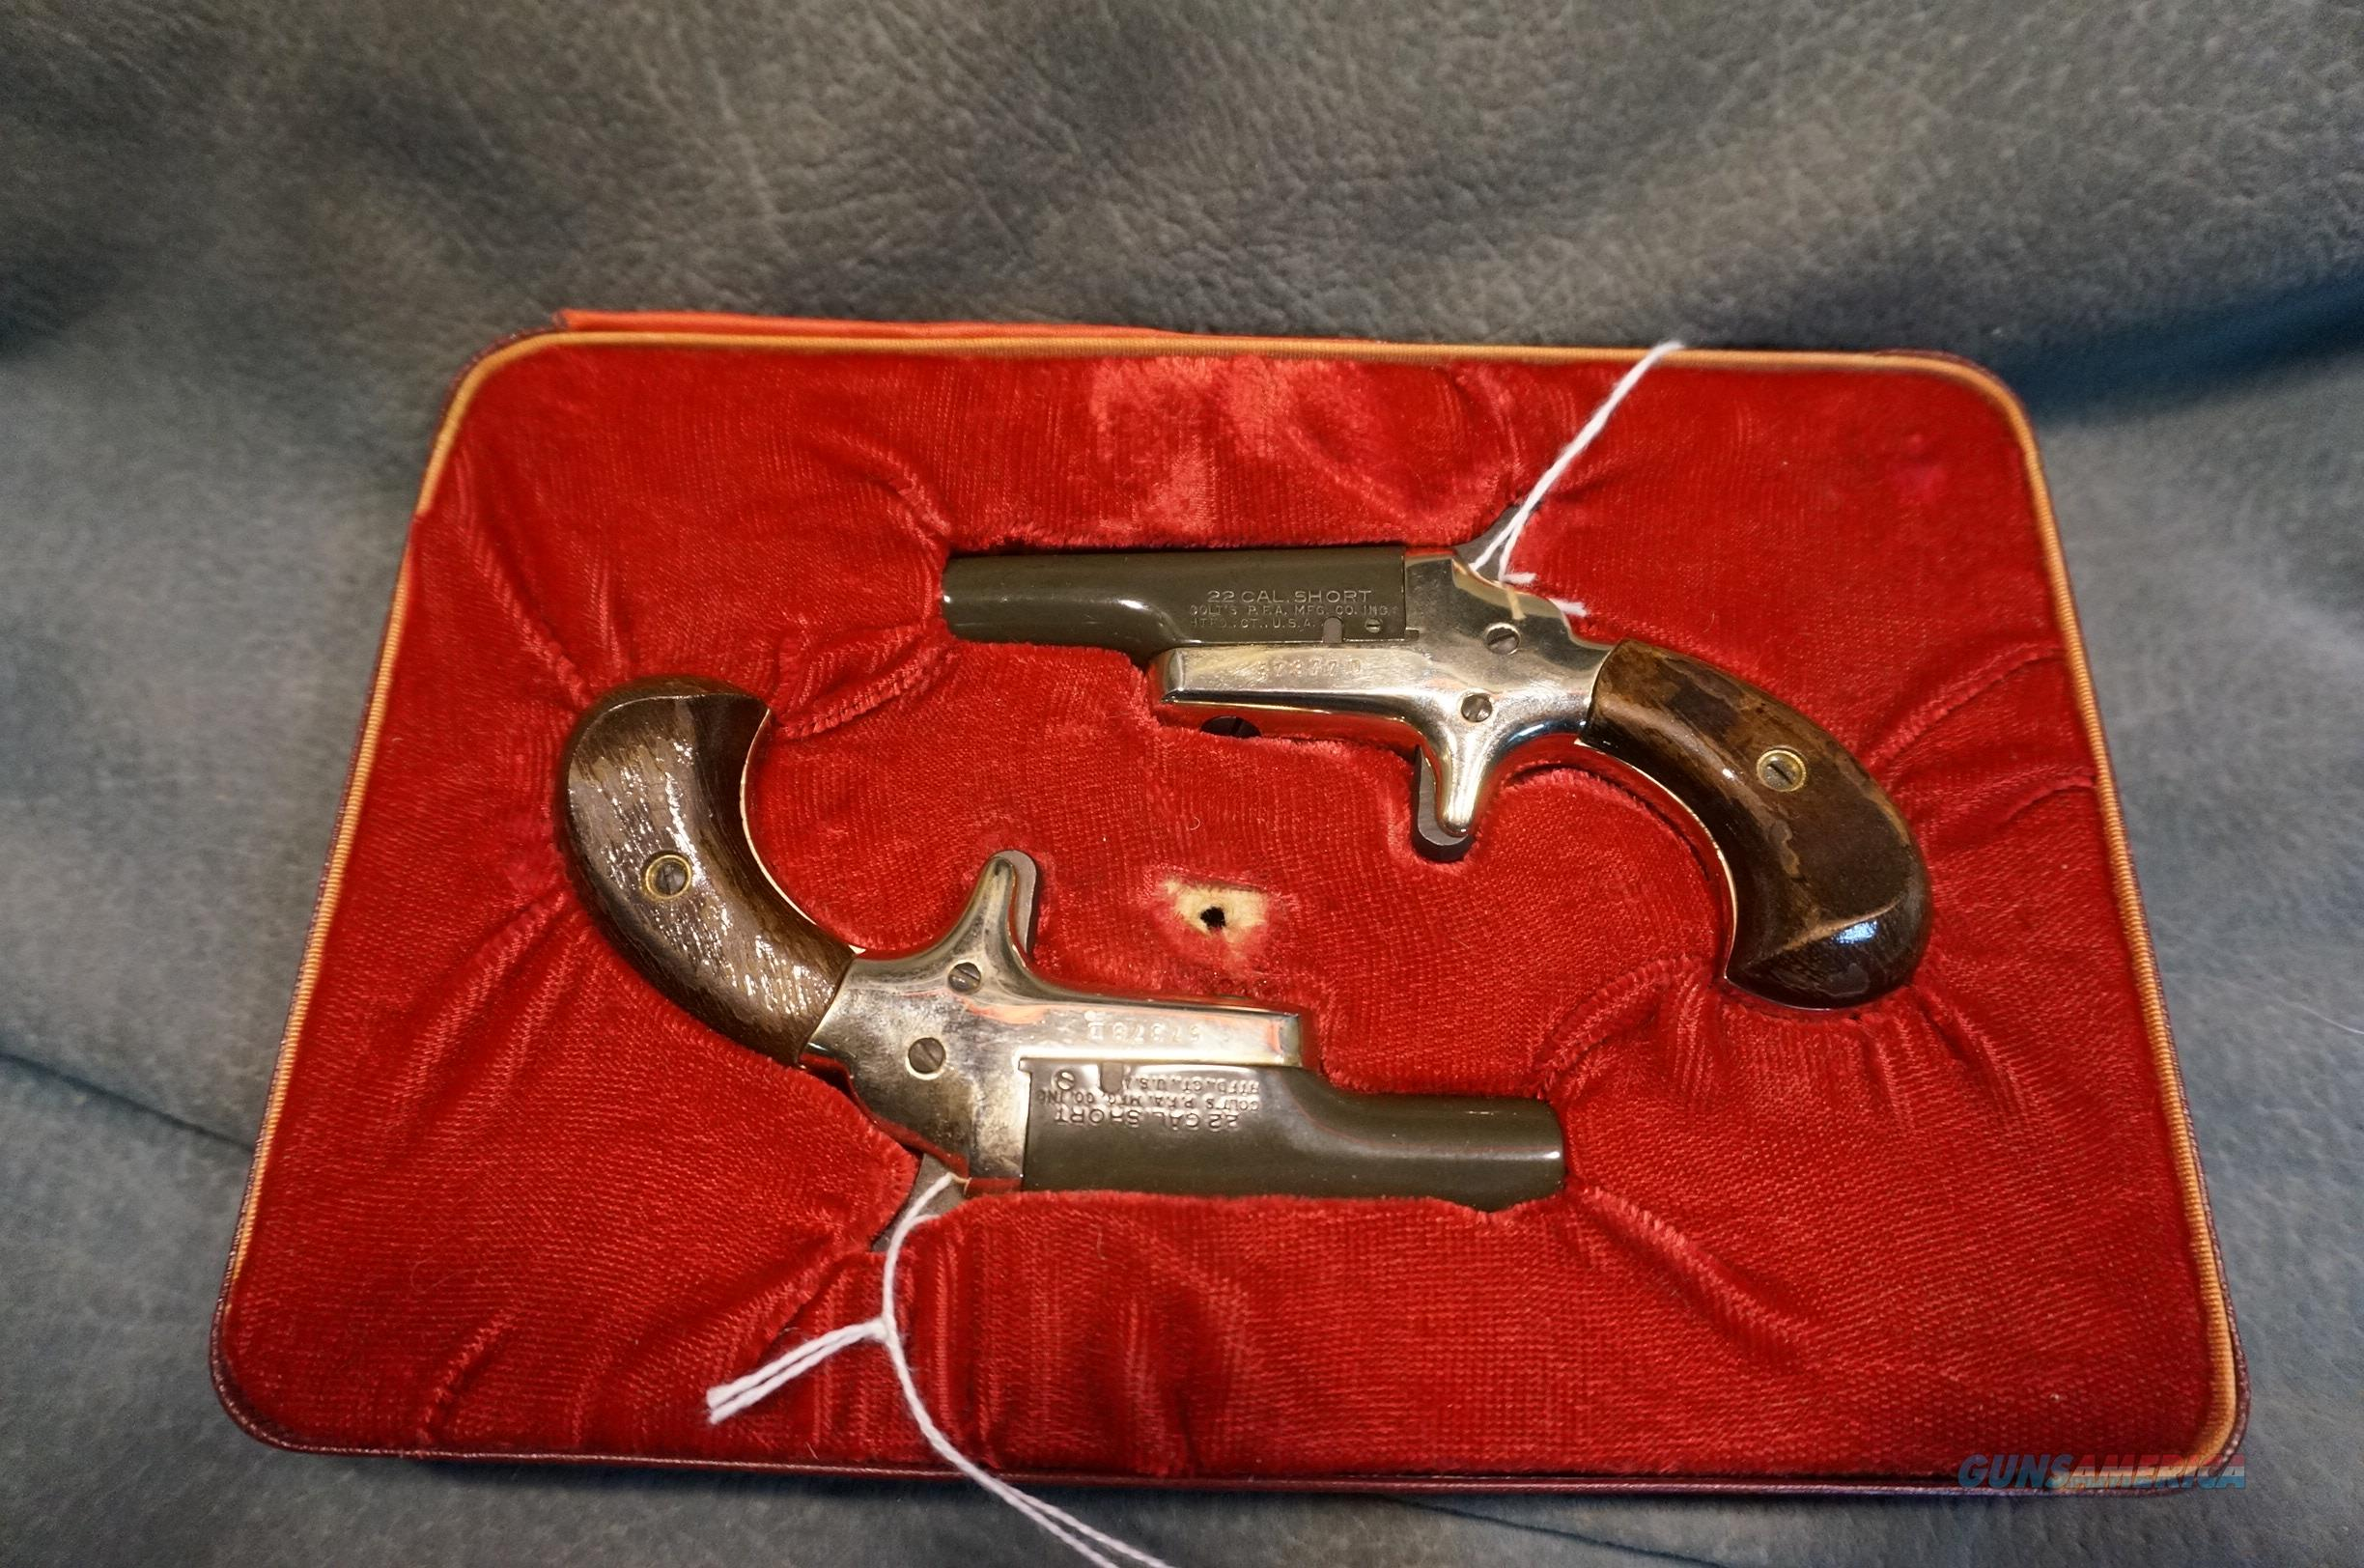 Colt Derringers 22LR Consecutive numbered pair  Guns > Pistols > Colt Single Action Revolvers - Modern (22 Cal.)